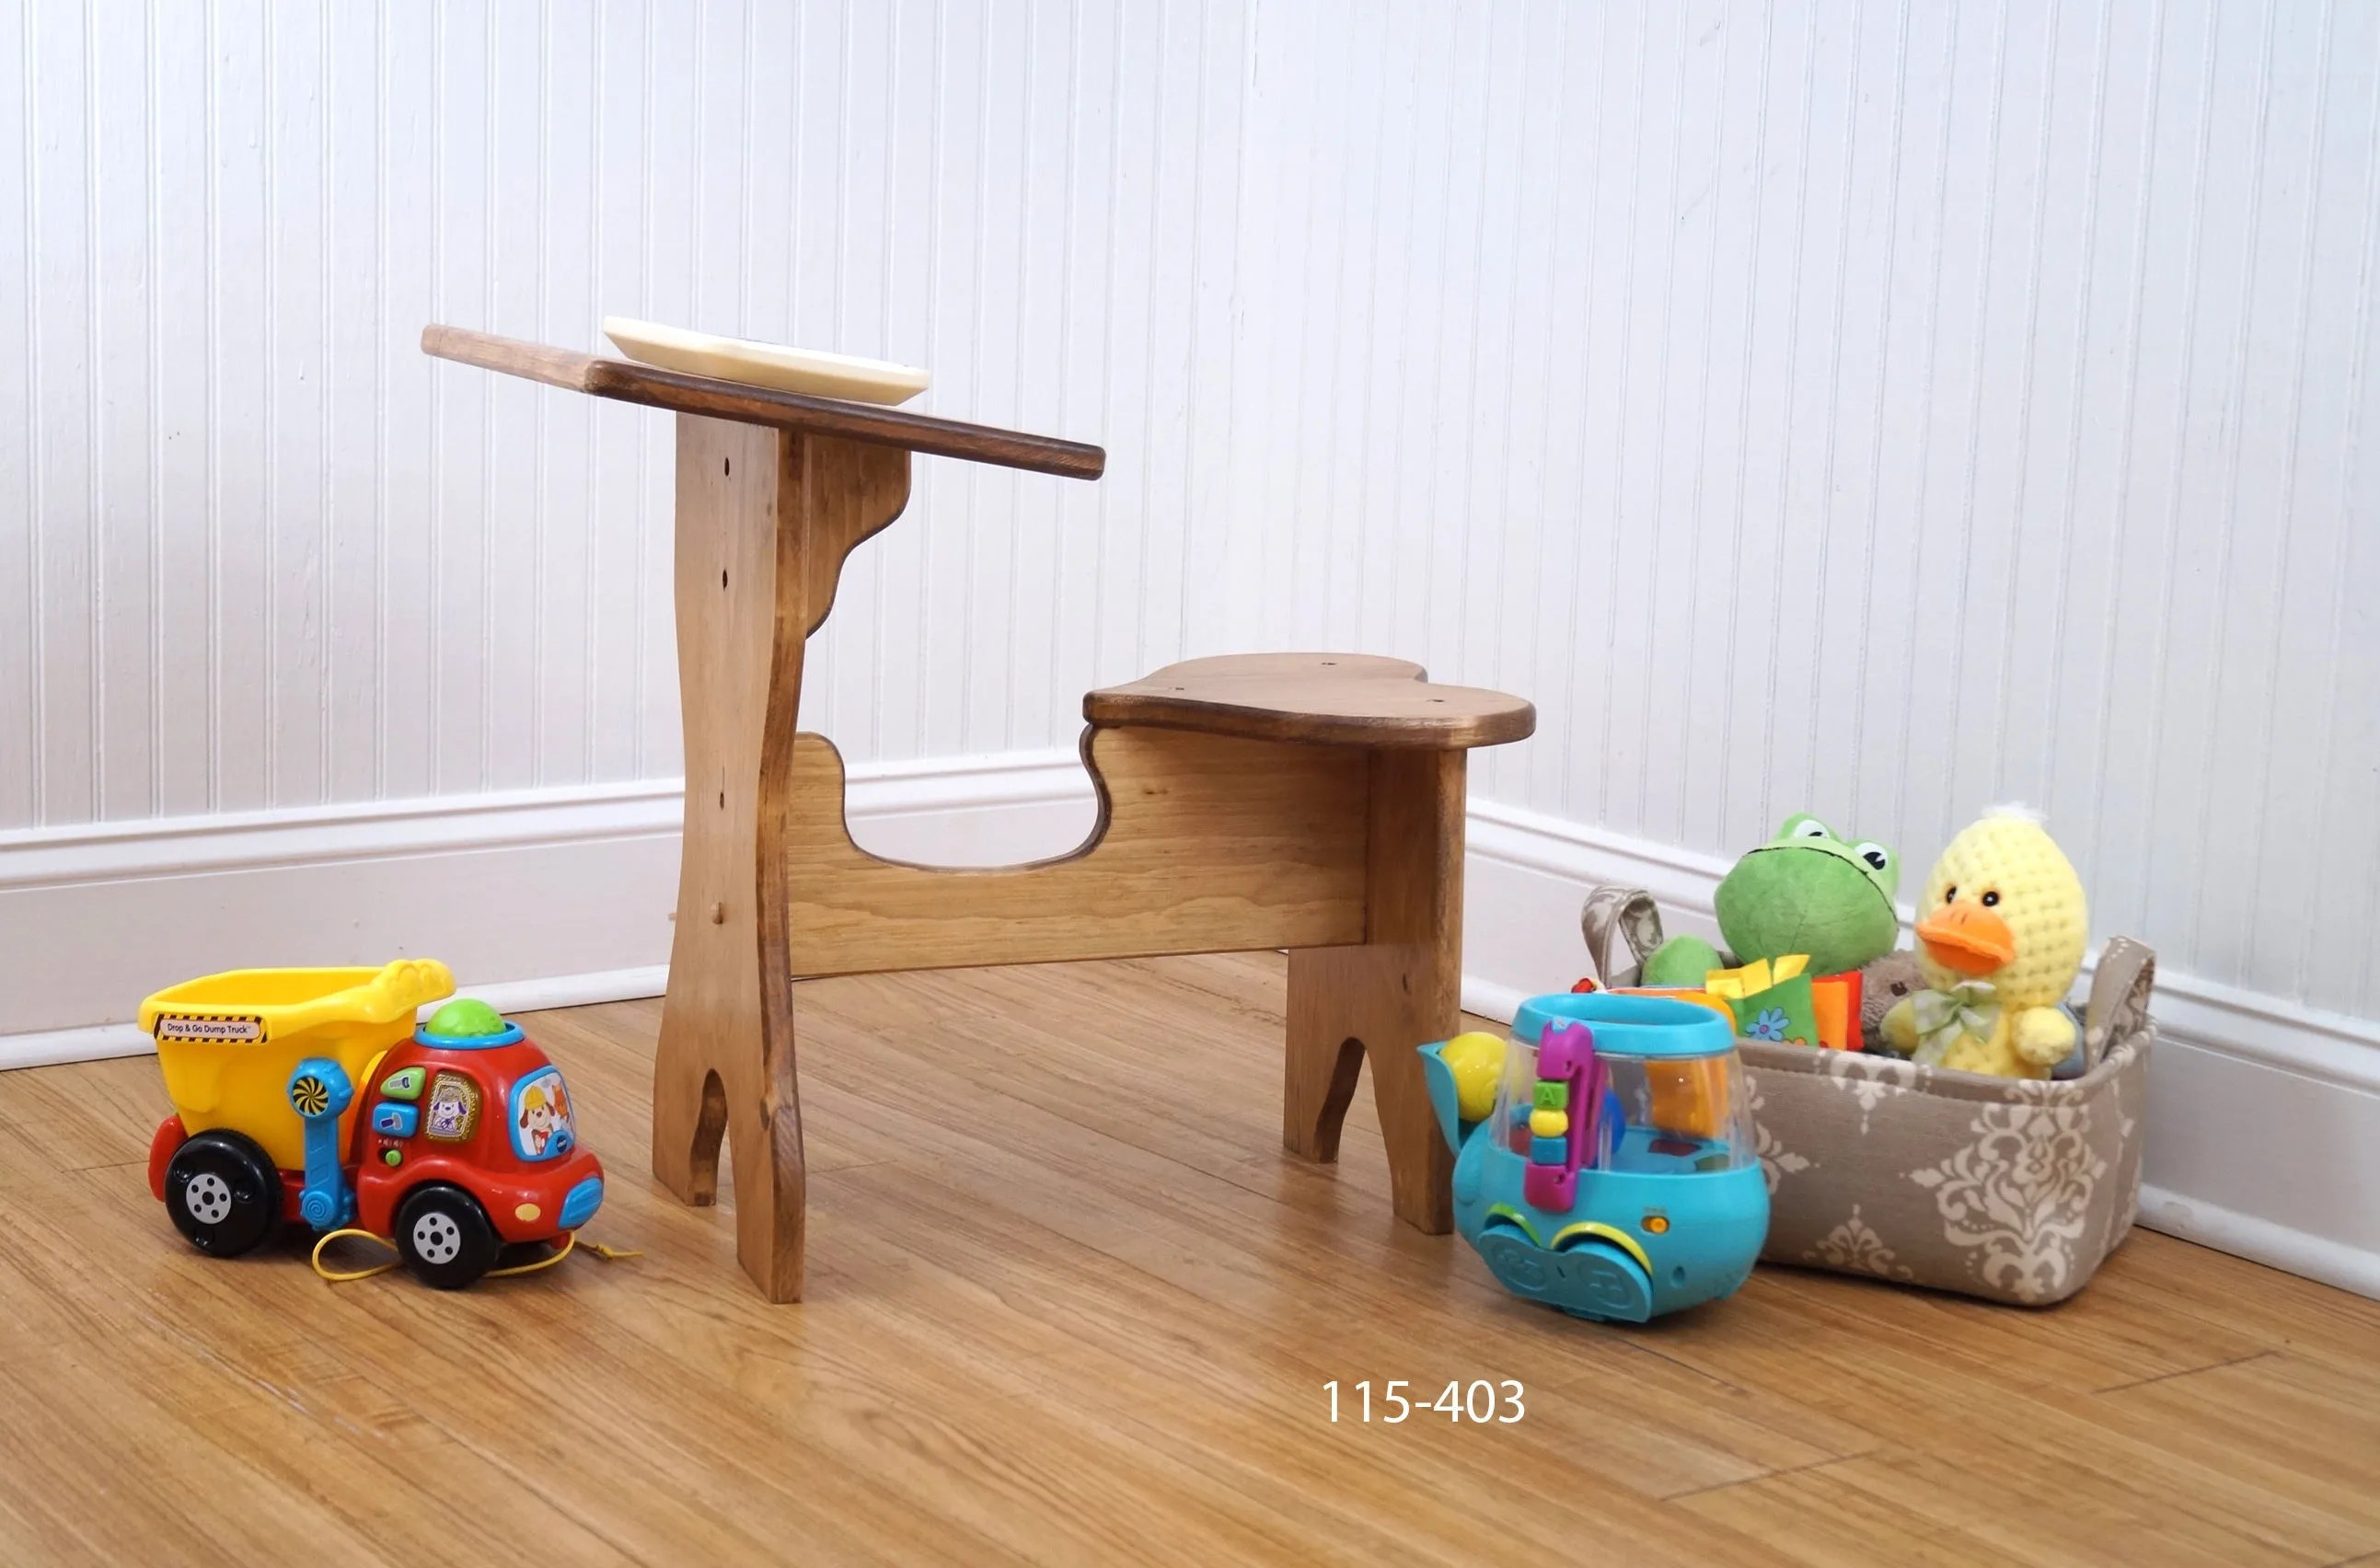 Fascinating Kids Kids Desk Kids Charity Desk Kids Target Toddler Kids Kids Desk Kids Giftfor Junior Play Gift Kids Gift Desk baby Desk For Kids